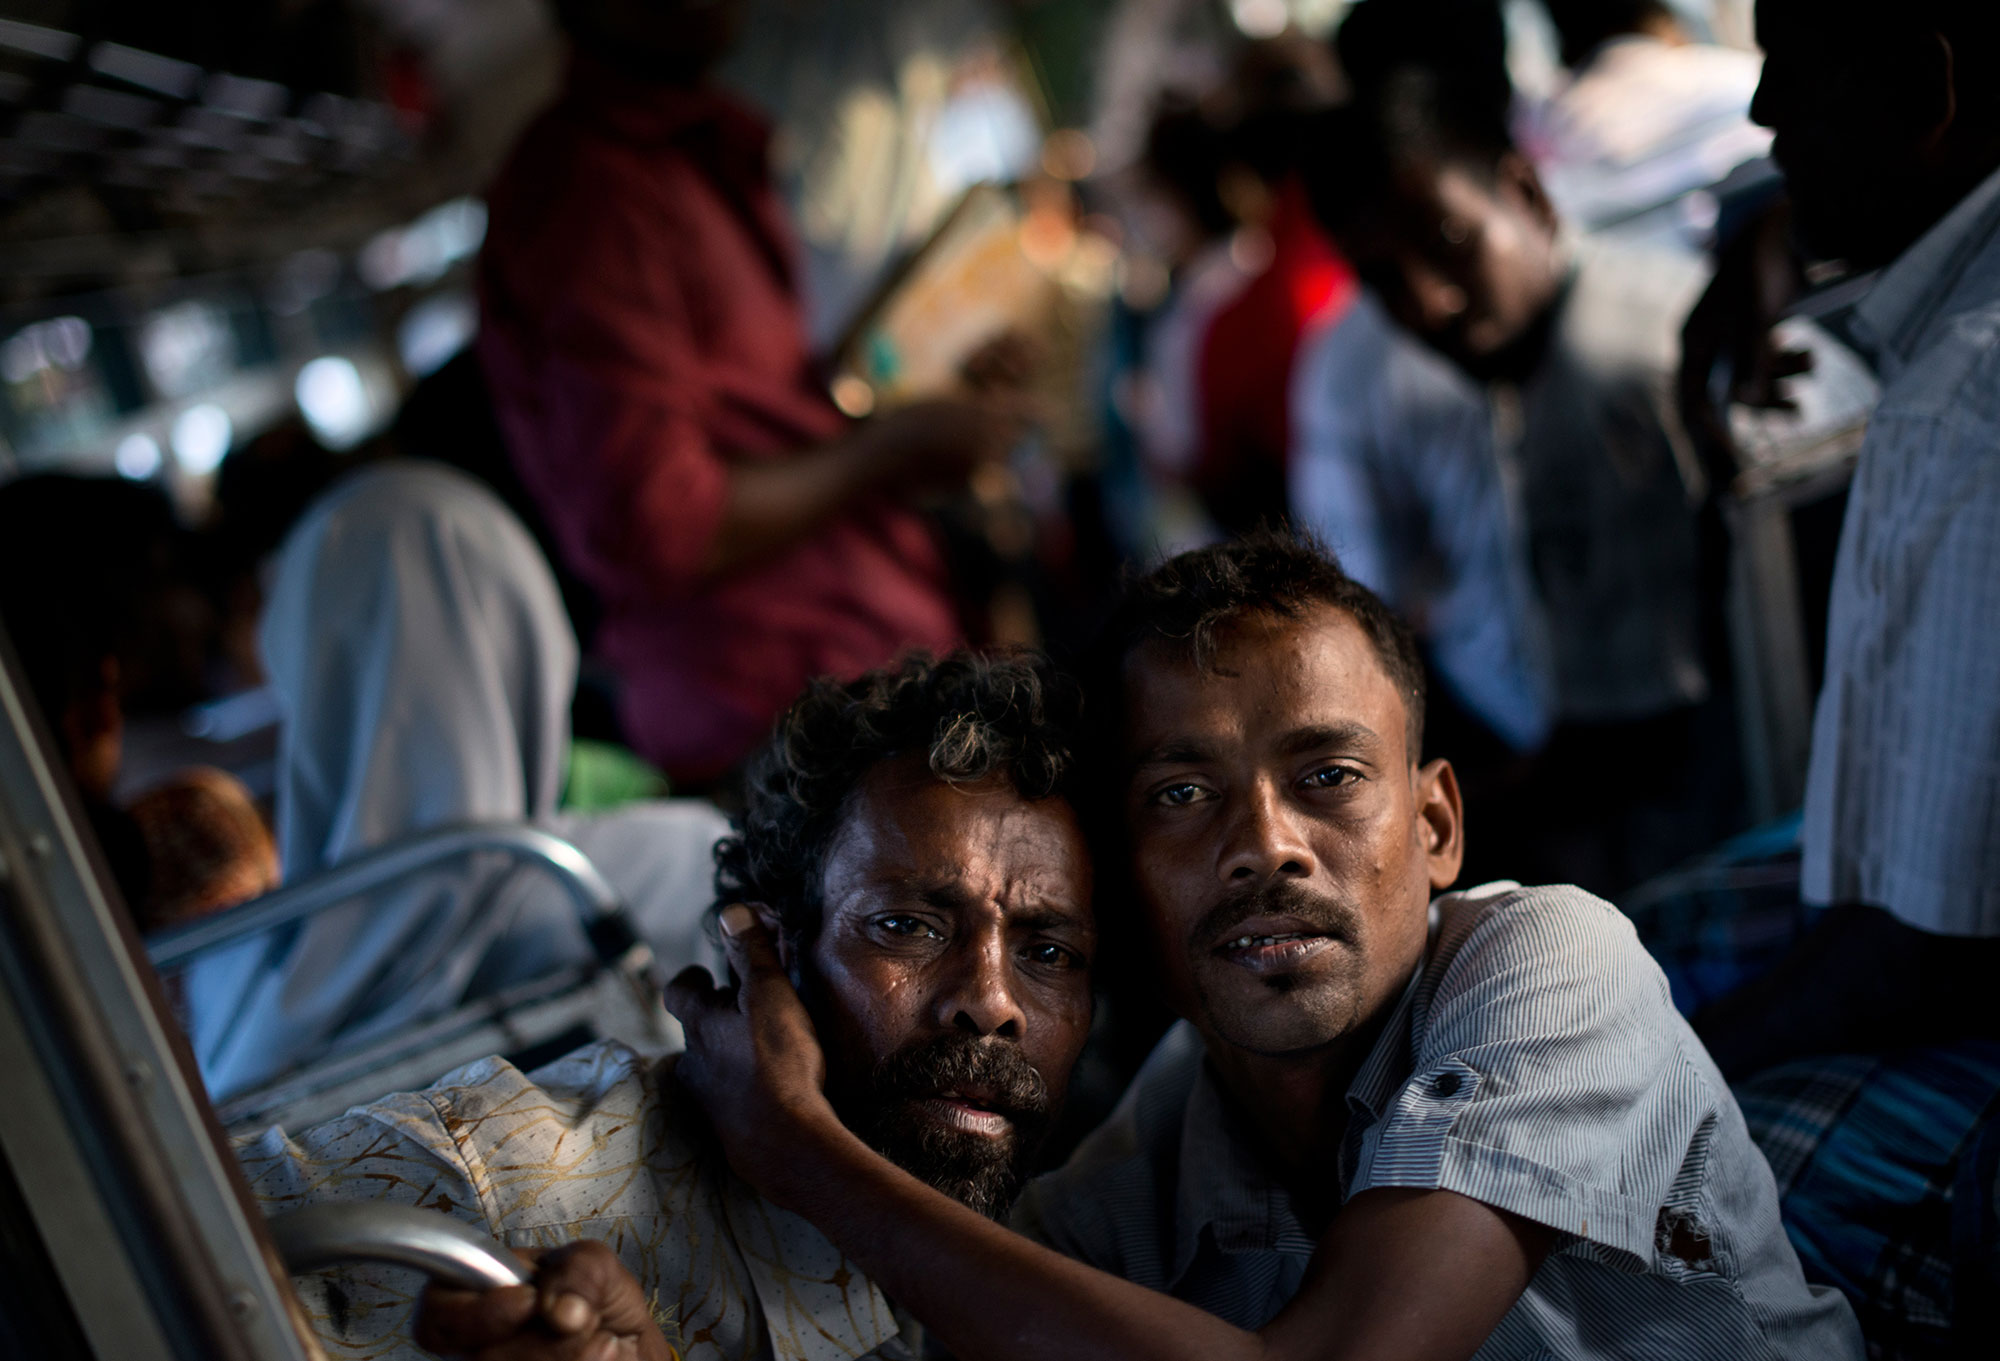 Two intoxicated Tamil passengers ride on a battered local bus. [Miguel Candela/Al Jazeera]